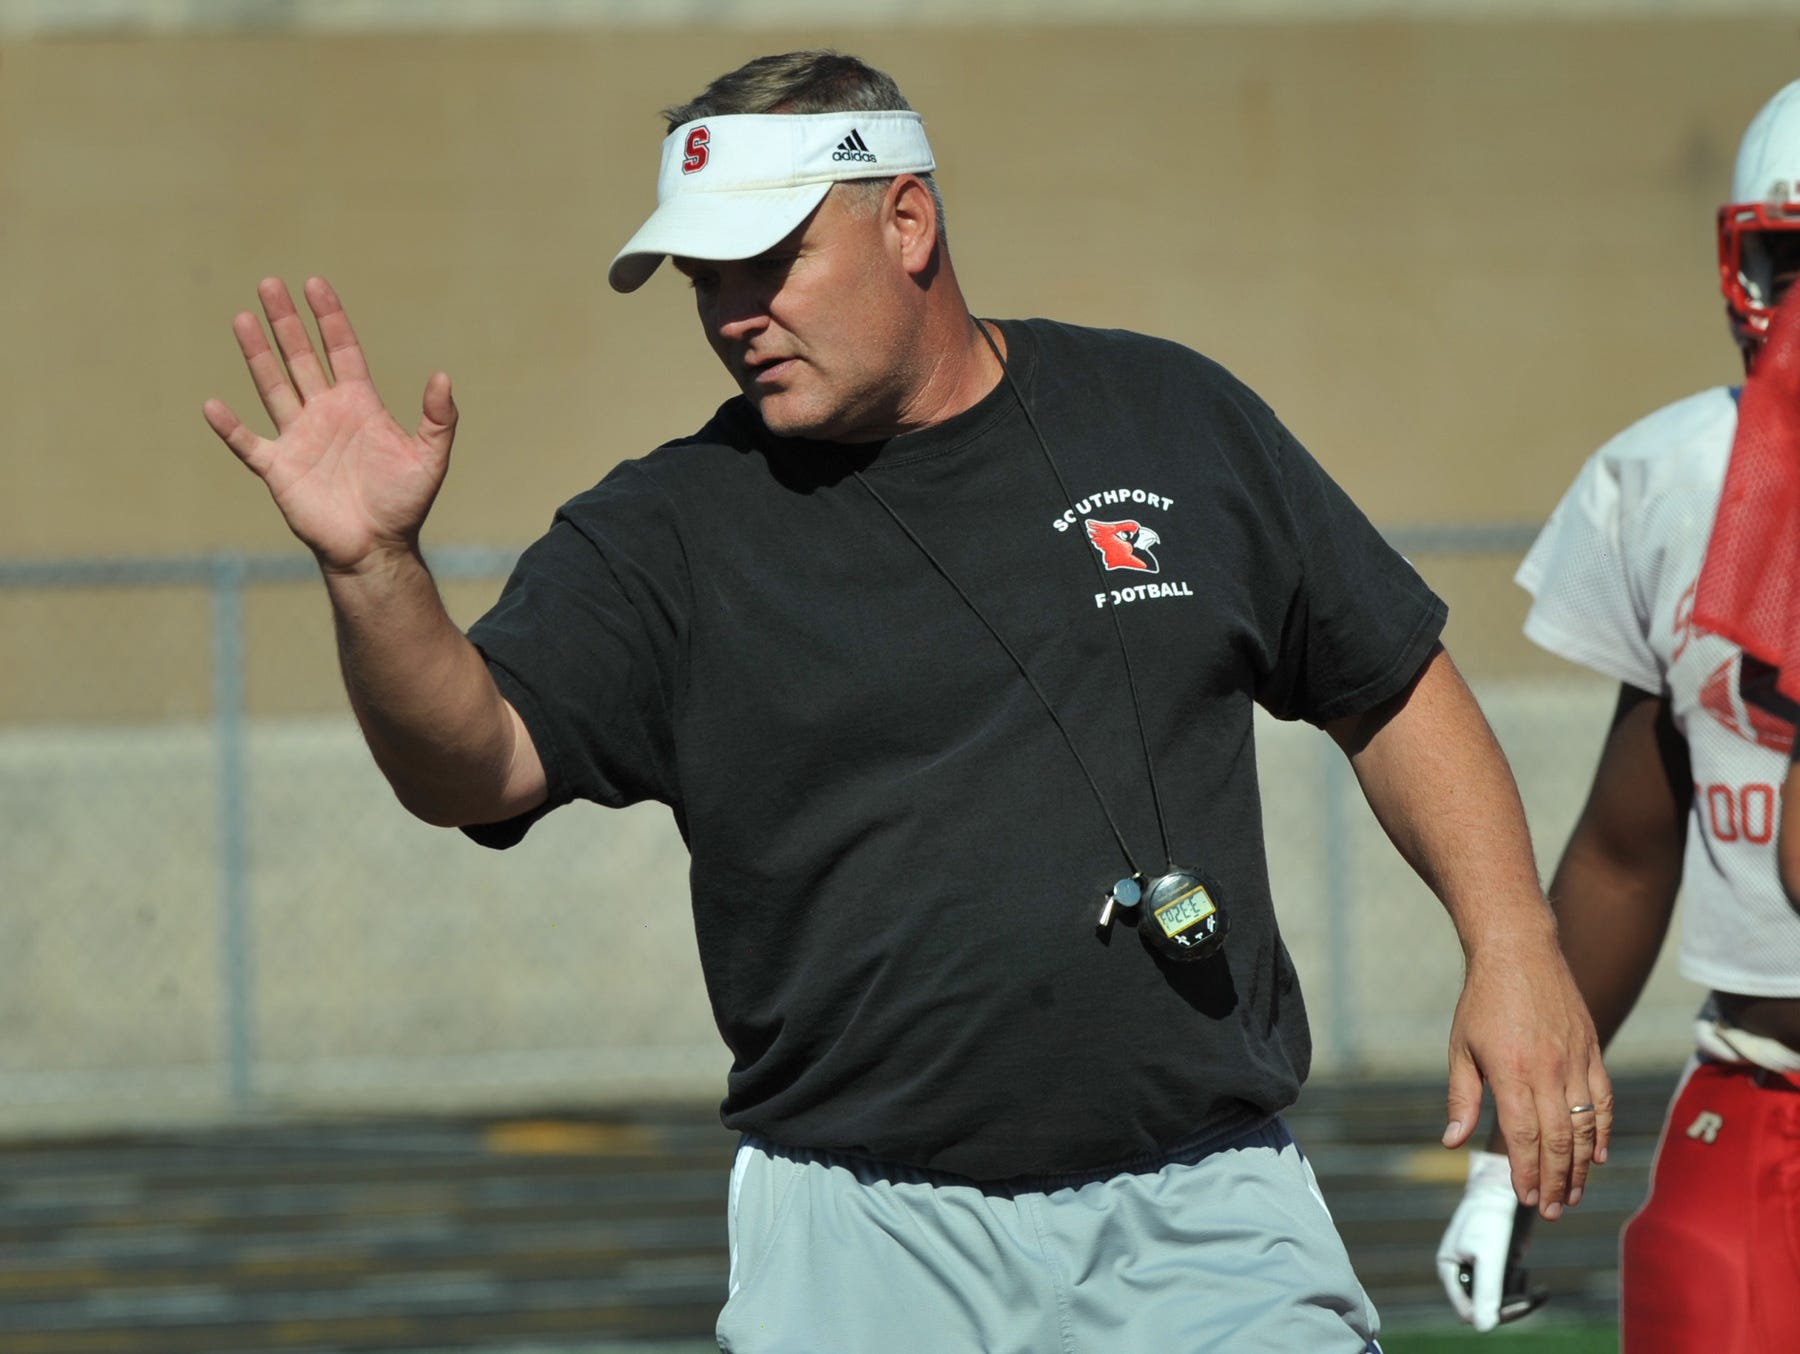 Southport football coach Bill Peebles instructs players during practice Oct. 8, 2013.